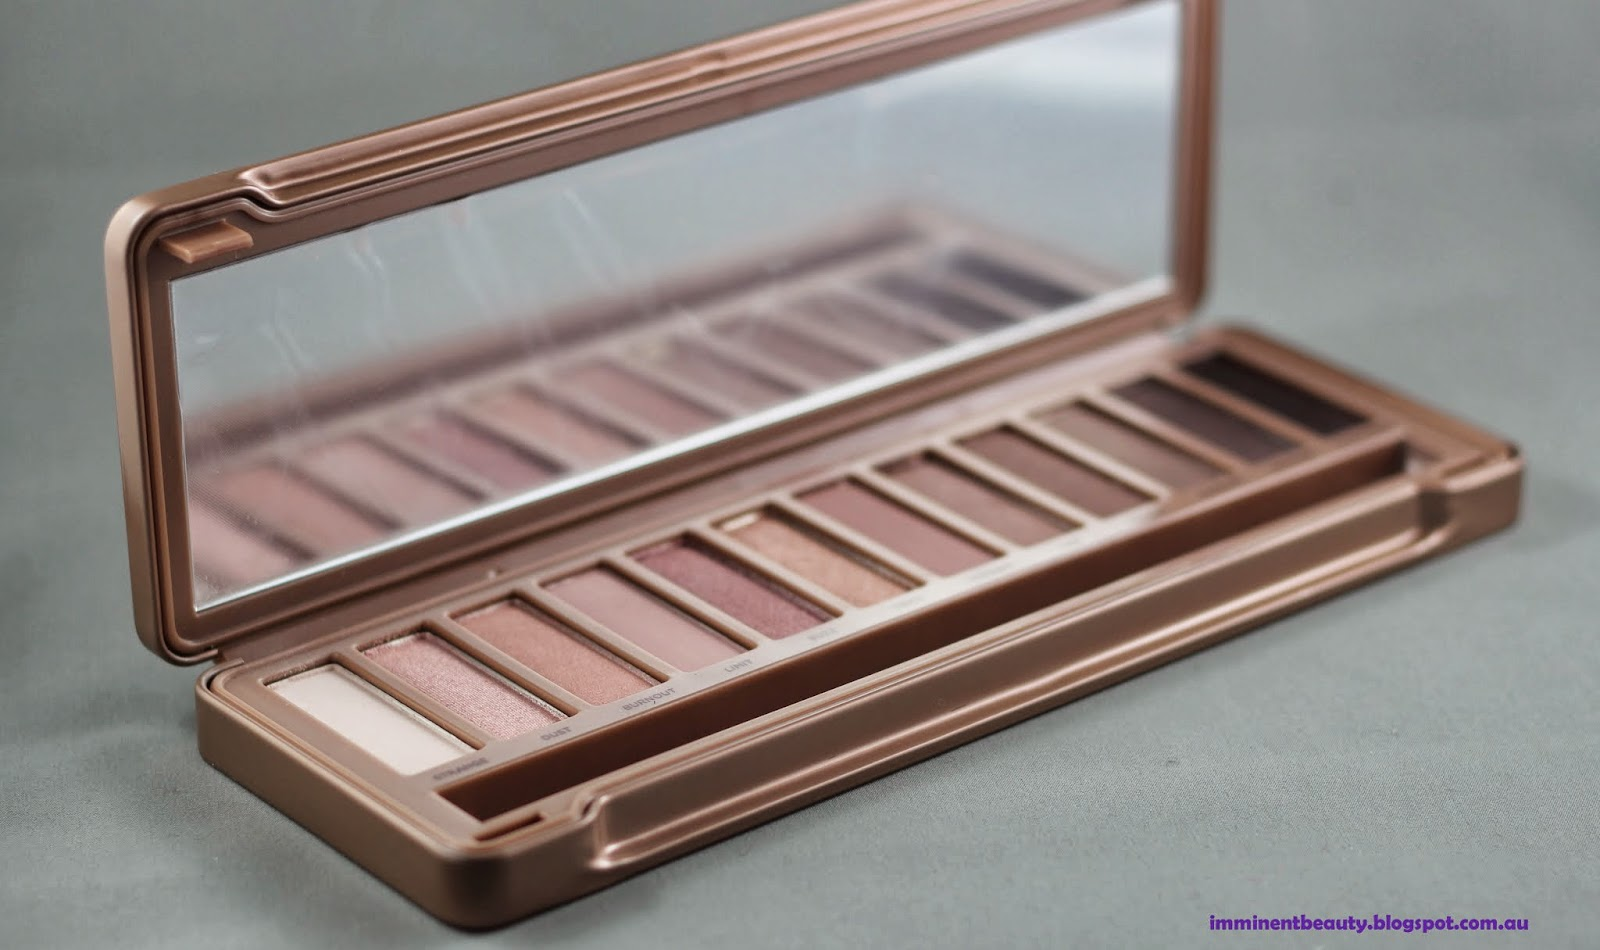 Urban Decay, Naked 3, Palette, Eyeshadows